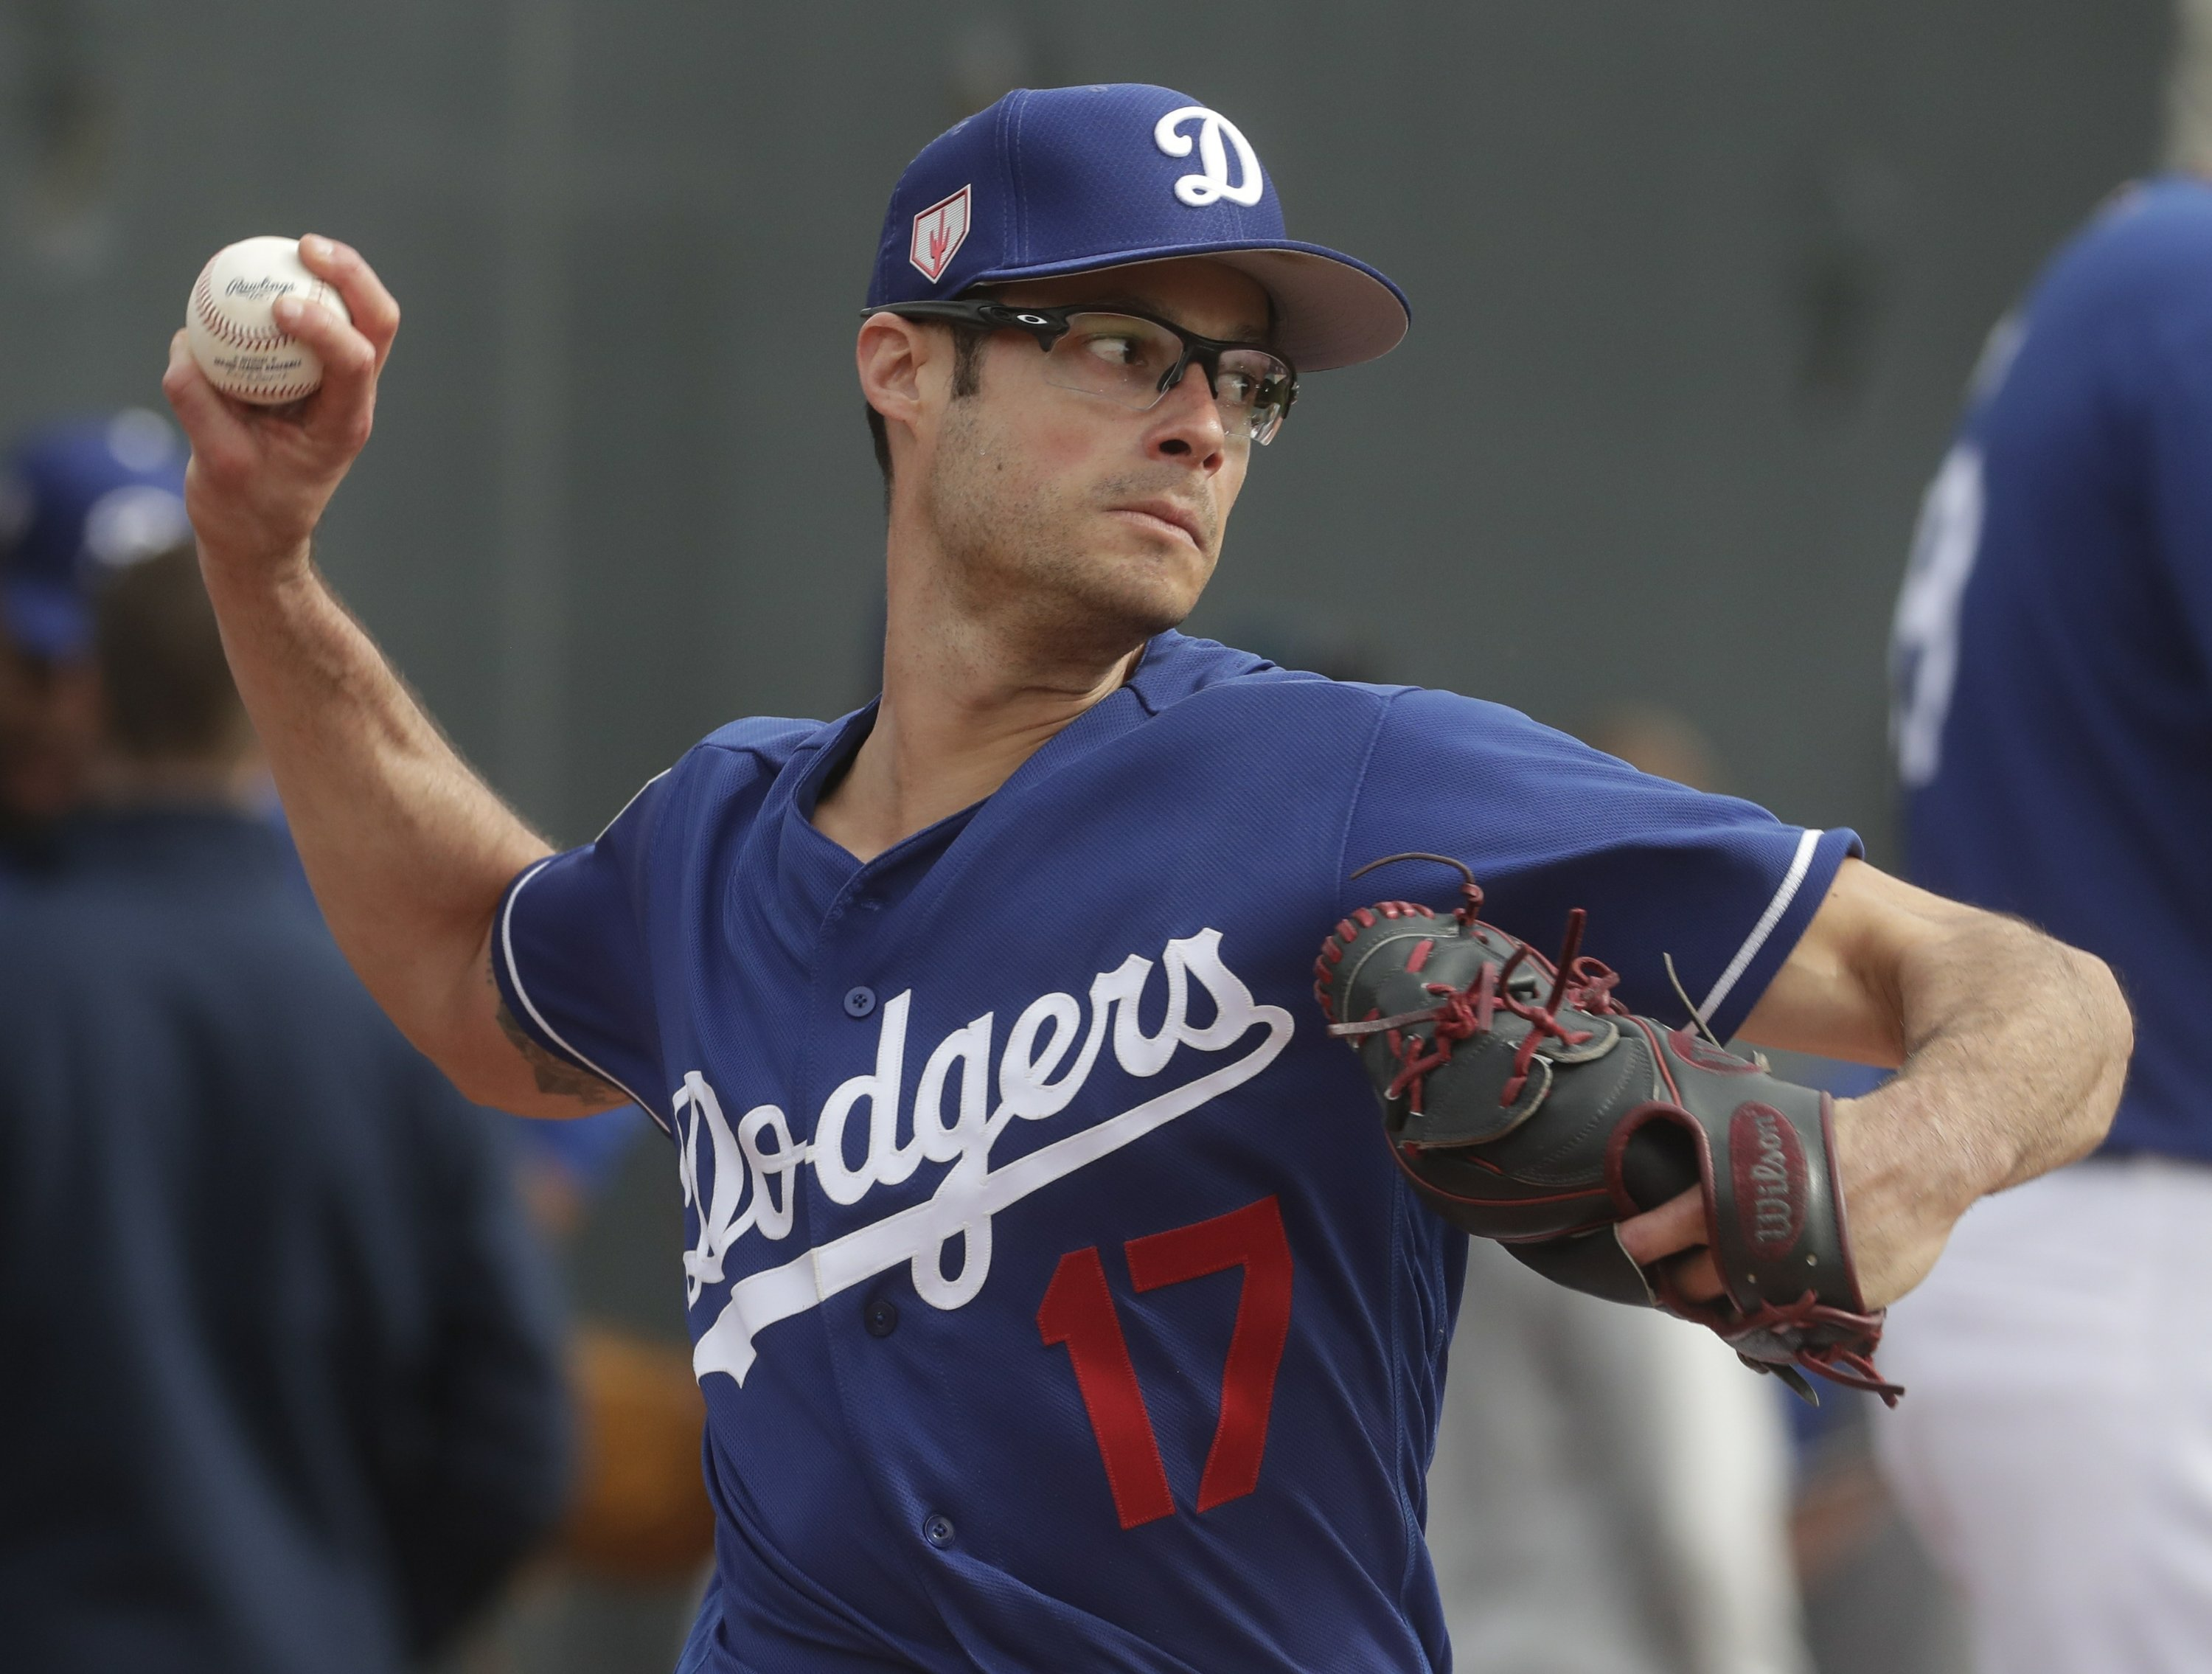 Reliever Joe Kelly Settling In Quickly With Dodgers Последние твиты от joe kelly (@joekellymoa). reliever joe kelly settling in quickly